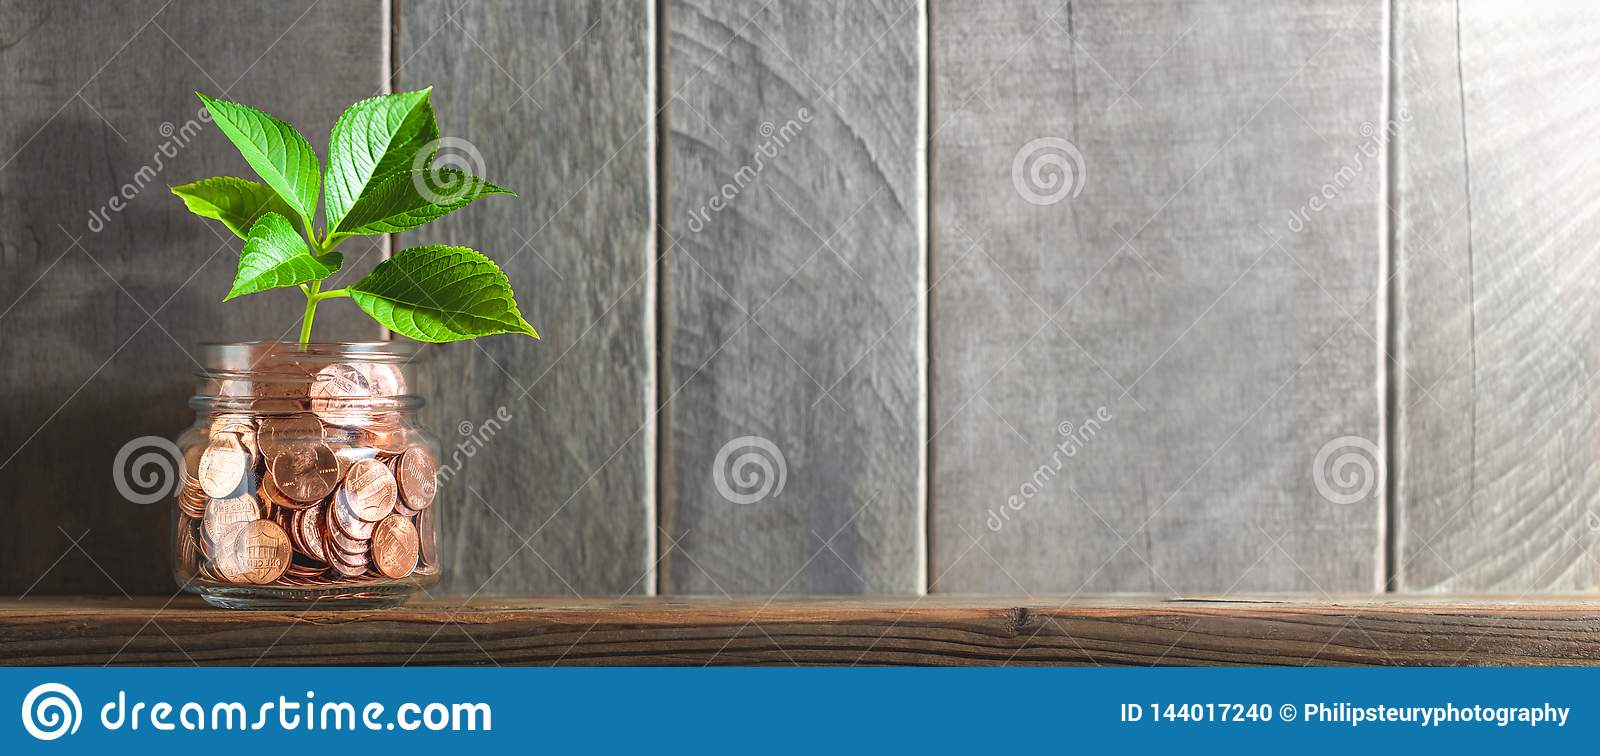 Young Plant Growing Out Of Coin Jar On Shelf With Wooden Background And Sunlight - Financial Growth / Investing Concept